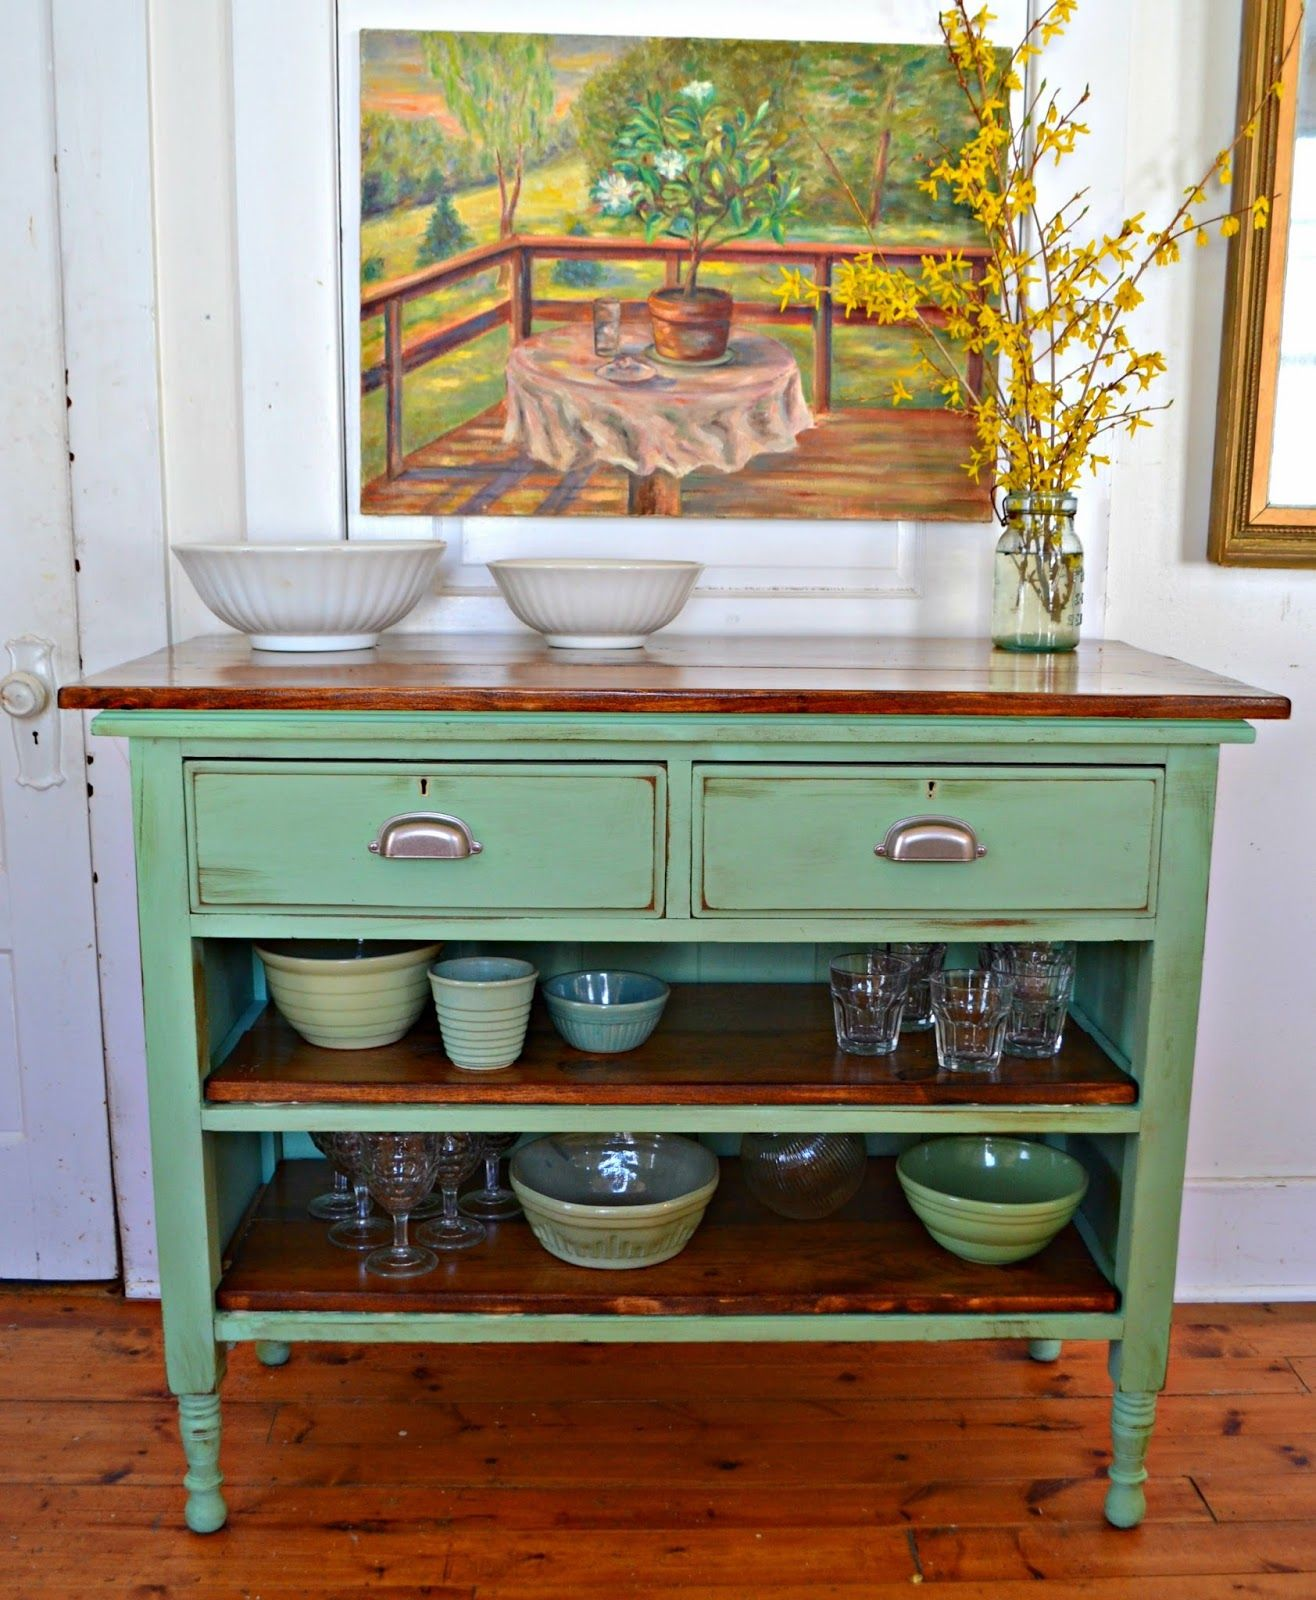 Kitchen Island Made From Antique Buffet: Heir And Space: Antique Dresser Turned Kitchen Island -- Would Be Great For A Sideboard Or A